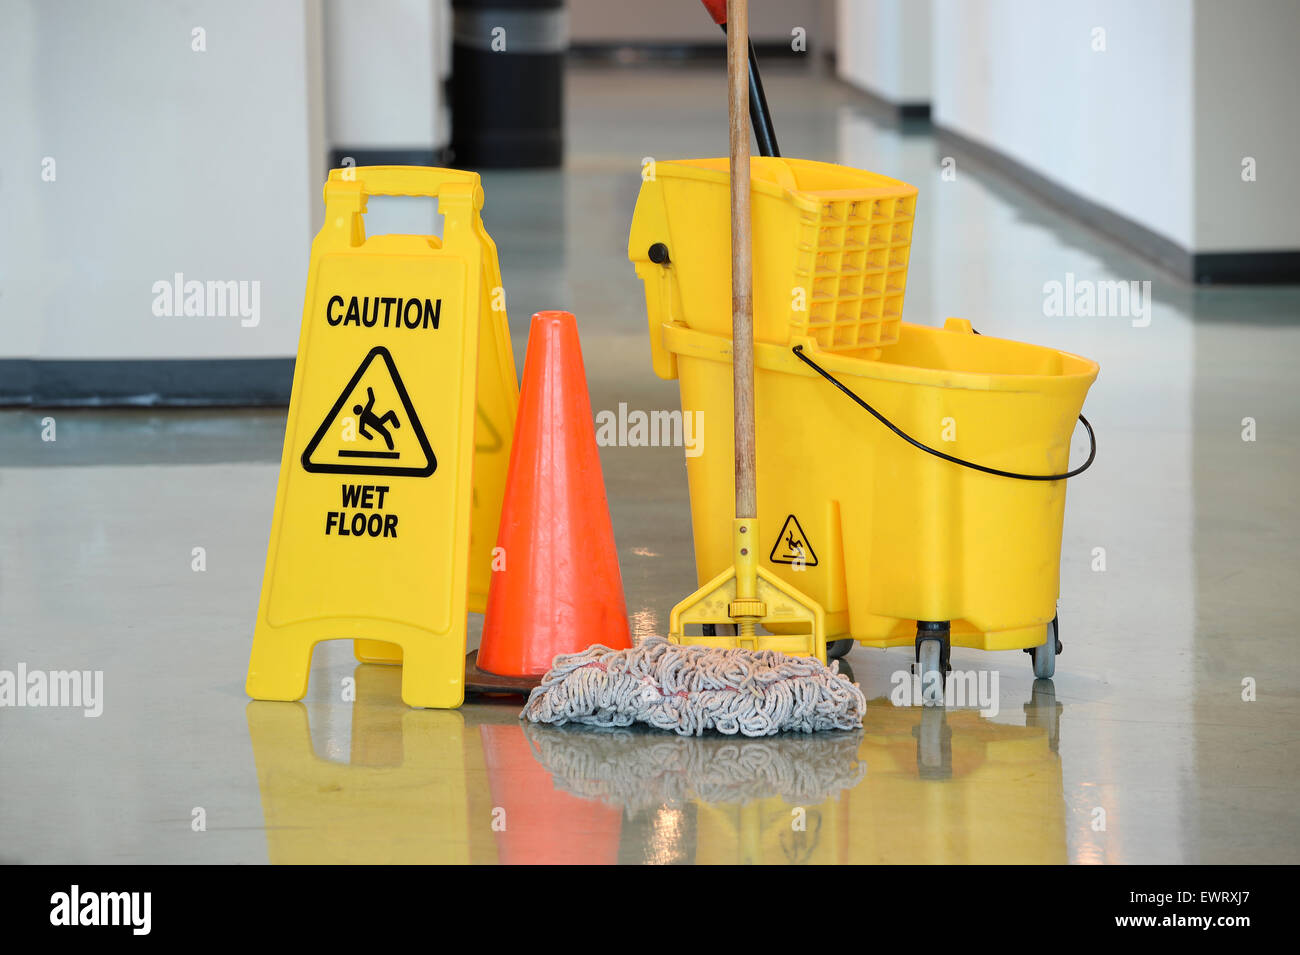 Caution sign with mop and bucket on office floor - Stock Image